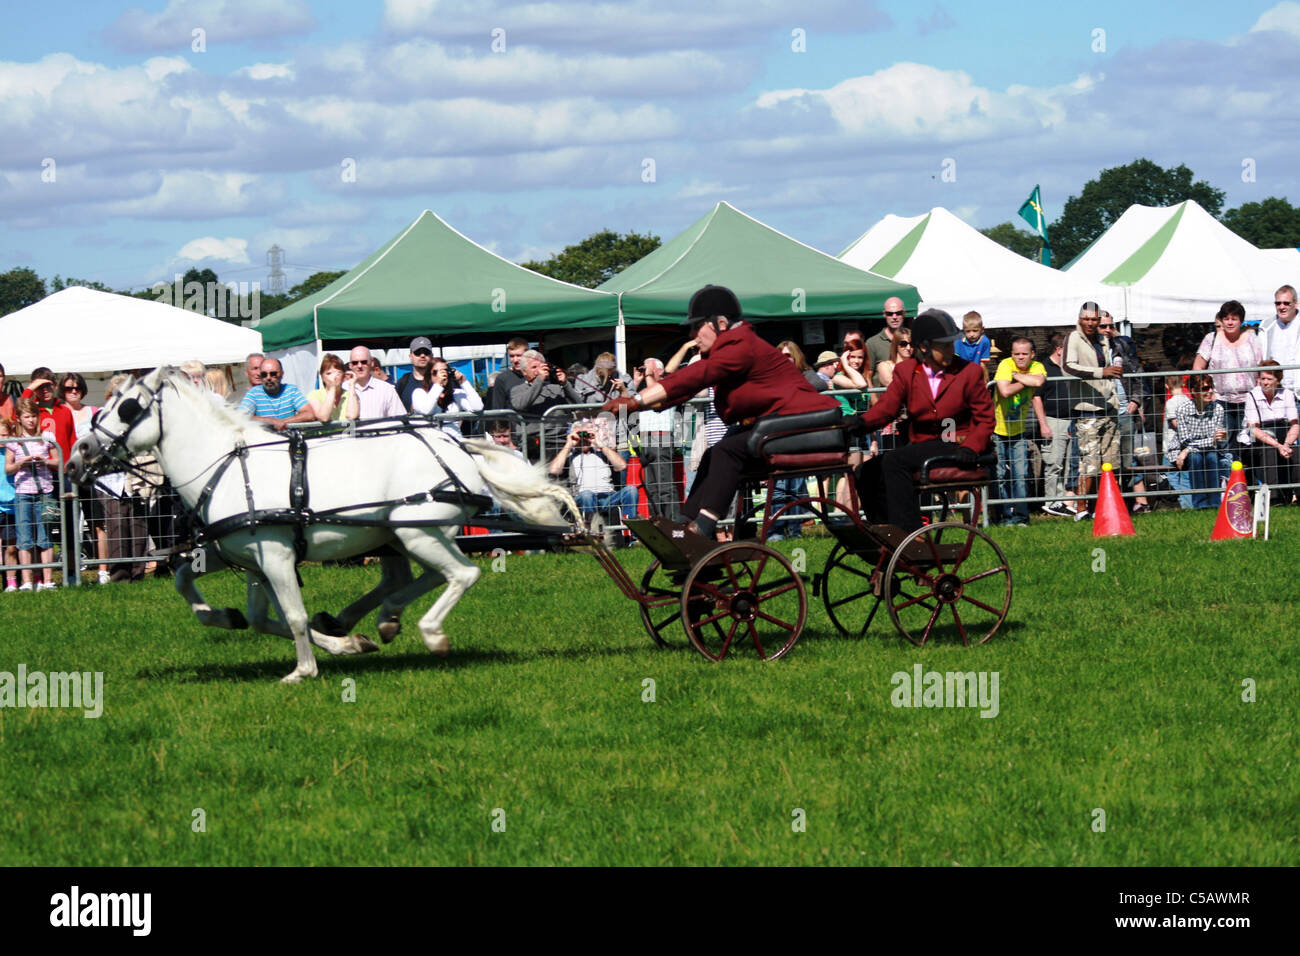 Scurry racing at Cheshire game and country show at Cheshire Show Ground Tabley Cheshire England Stock Photo